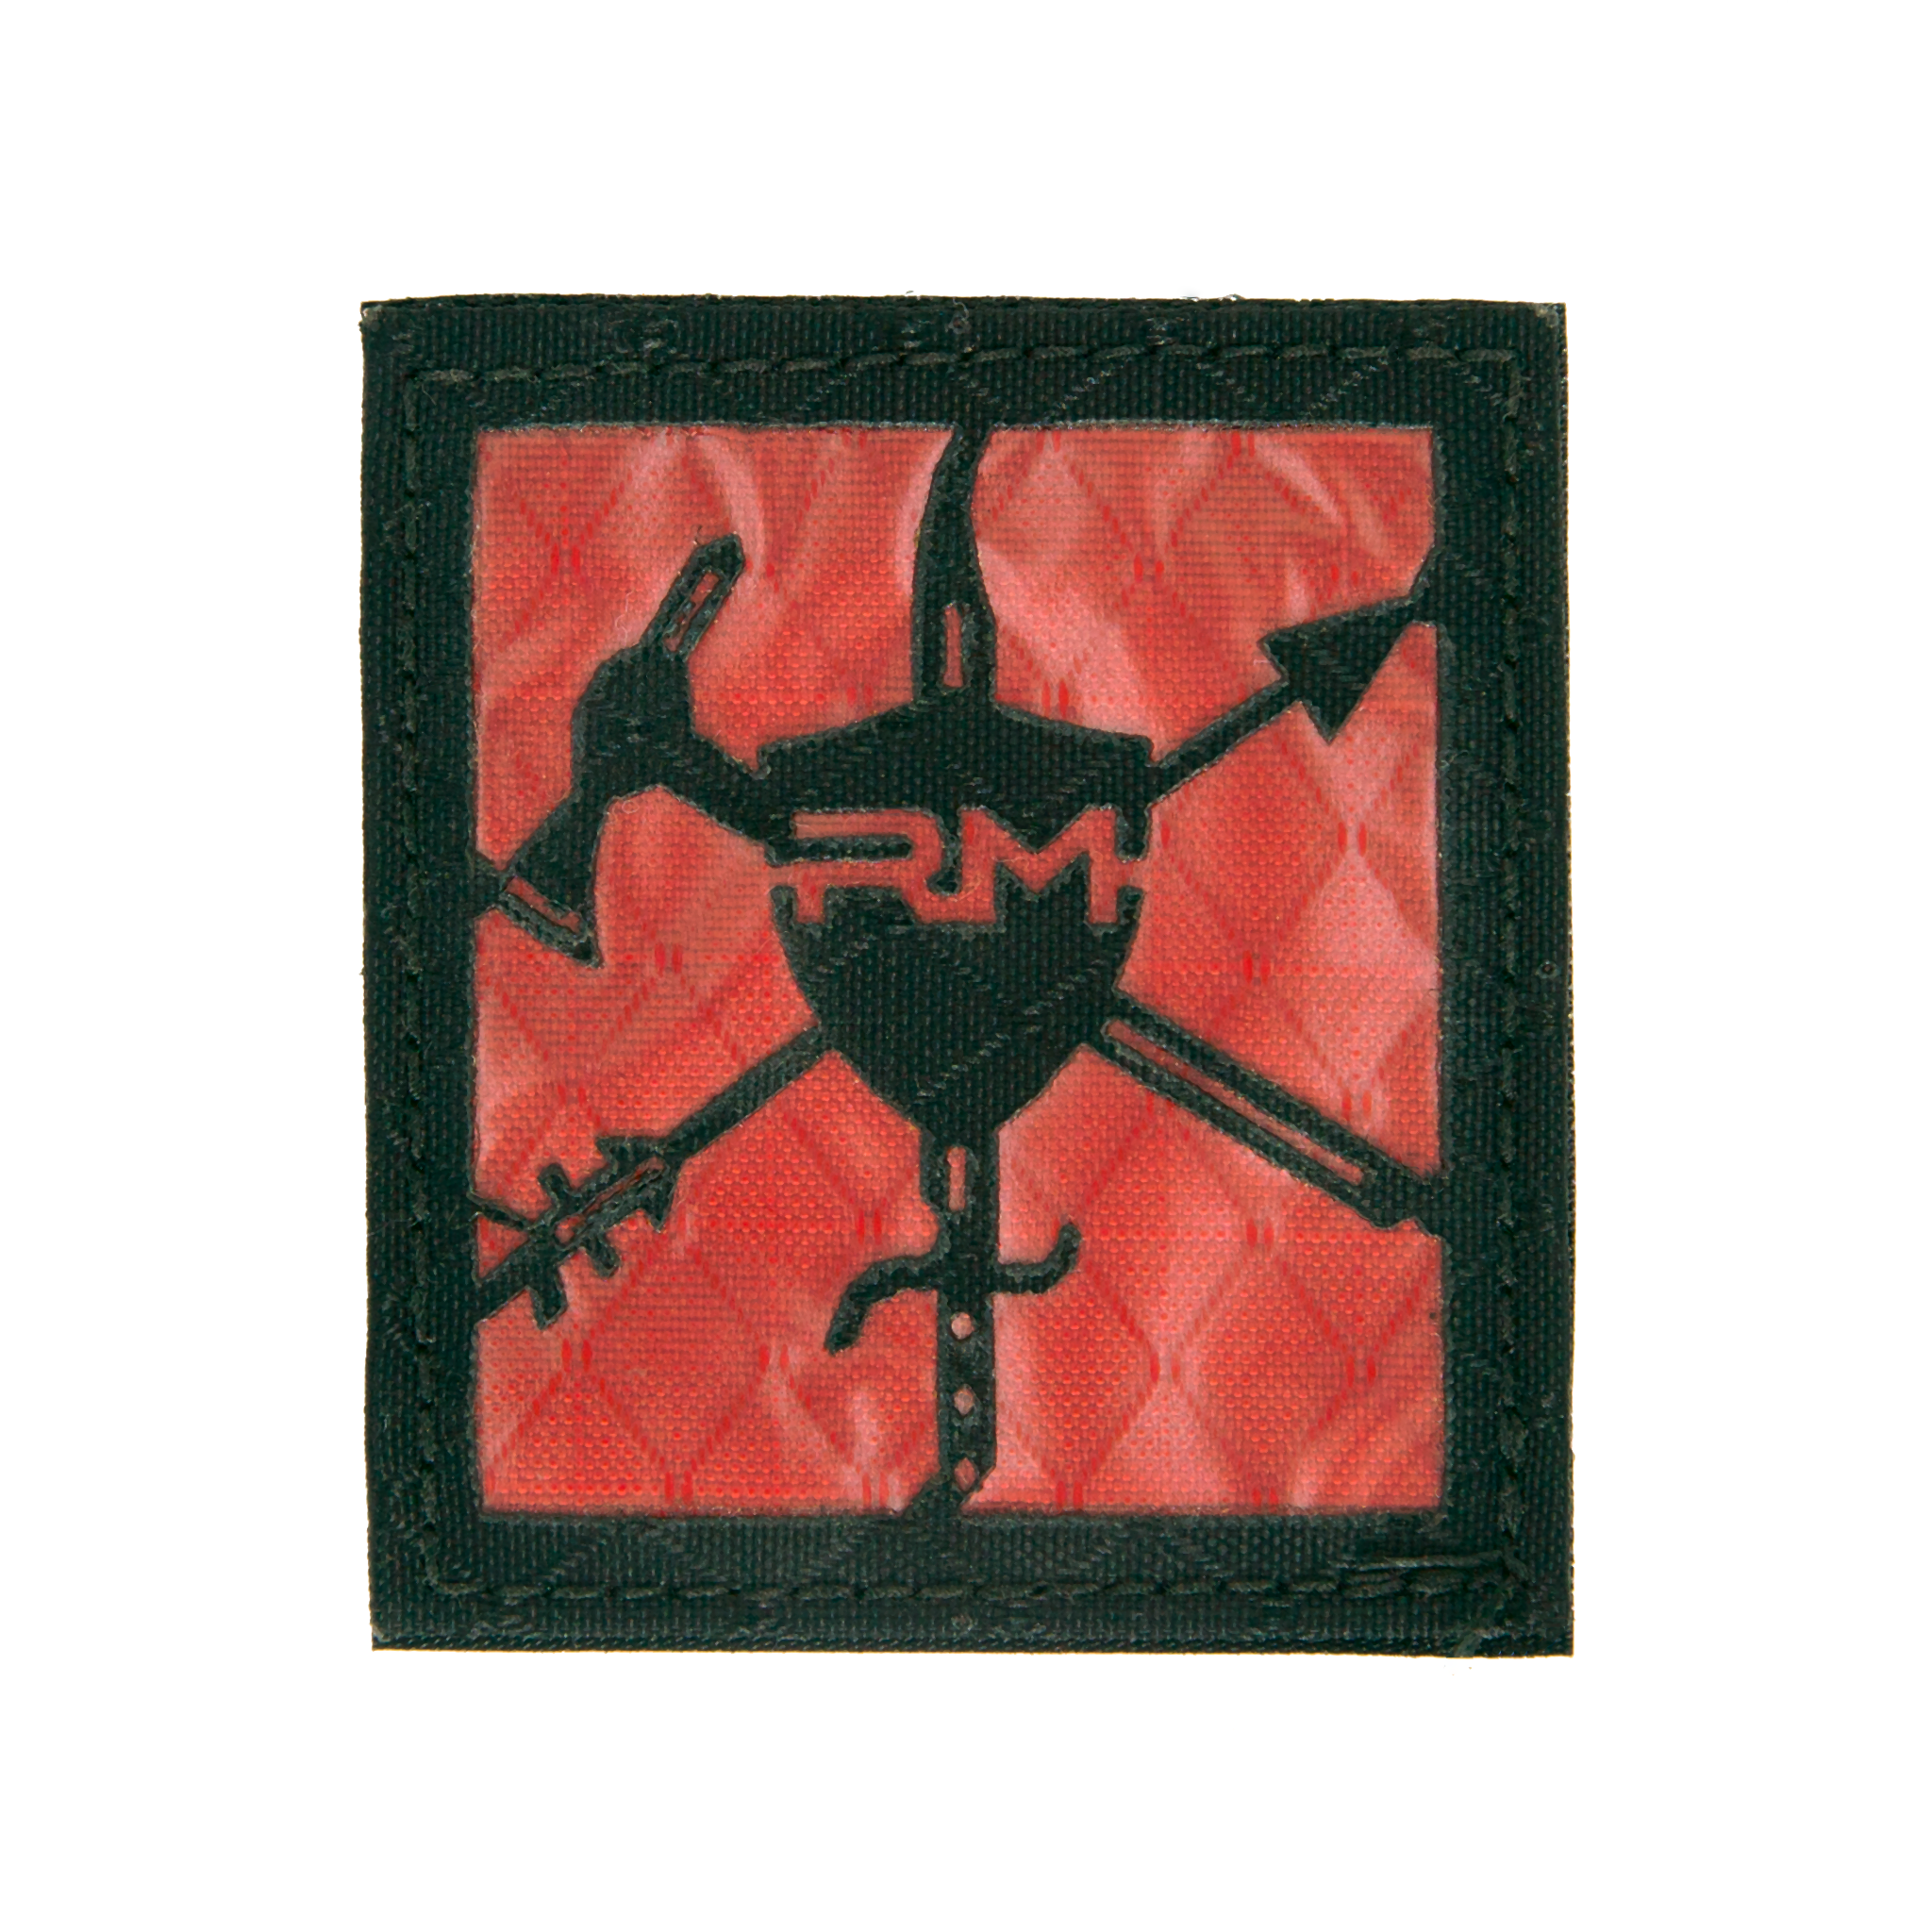 ReadyMan Black and Red Logo Patch